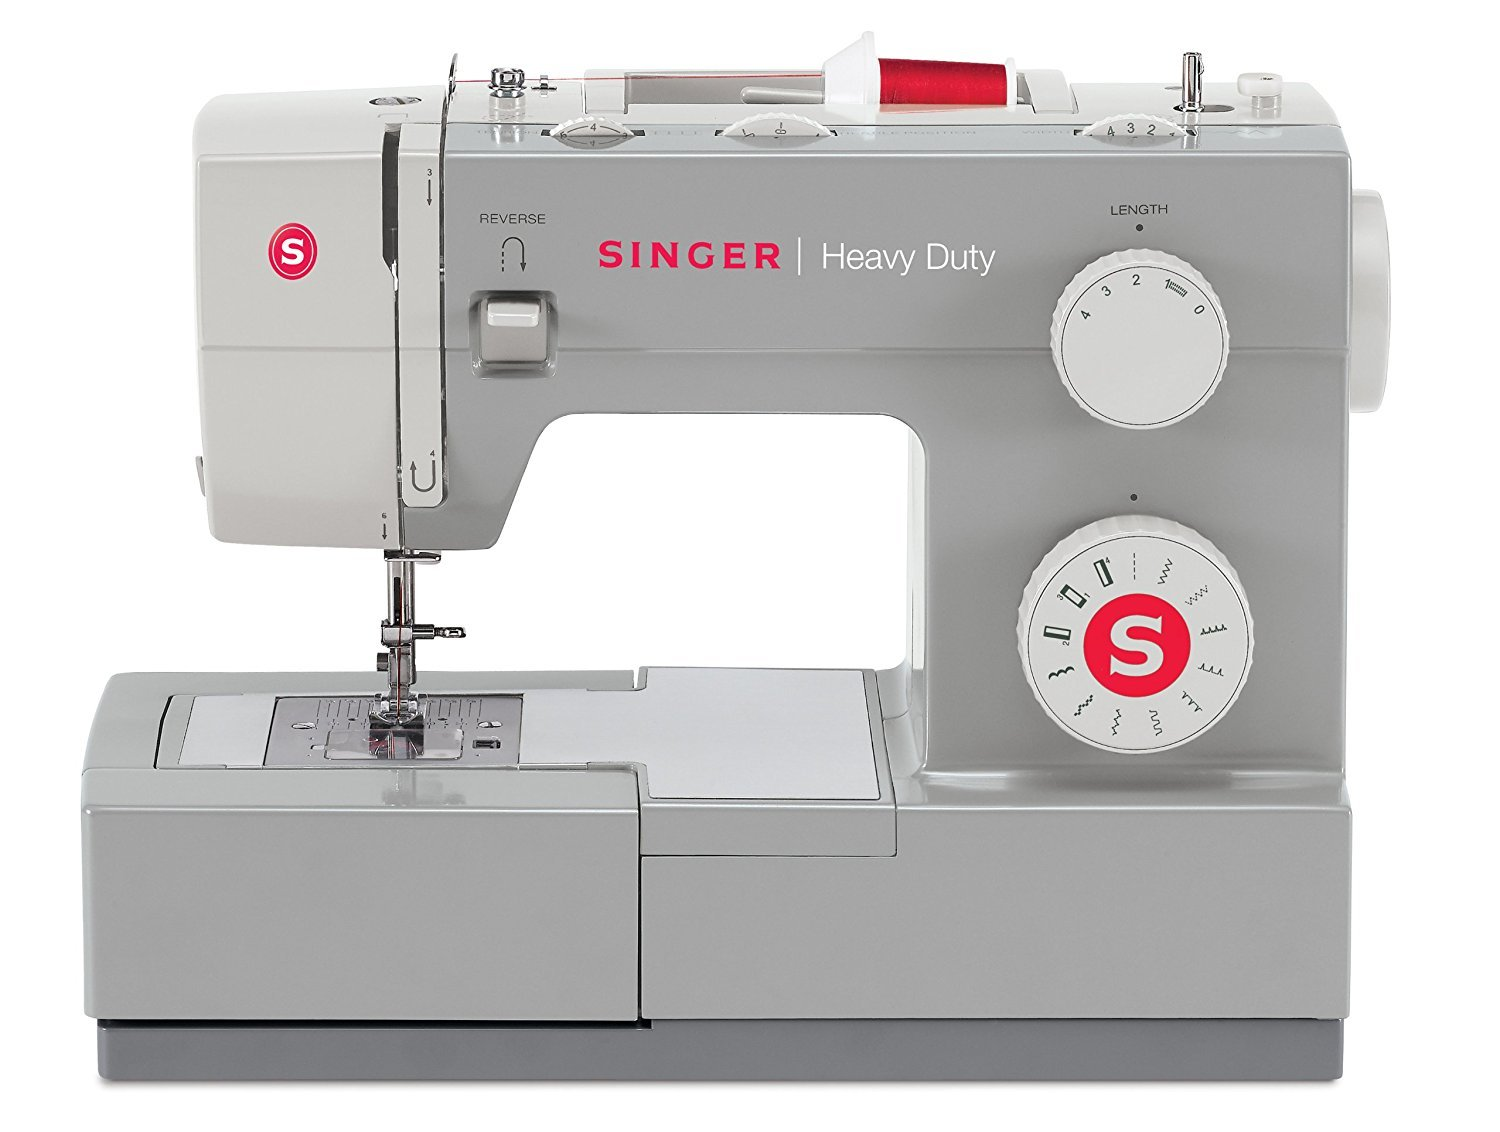 Top 9 Best Singer Sewing Machine Reviews in 2020 5